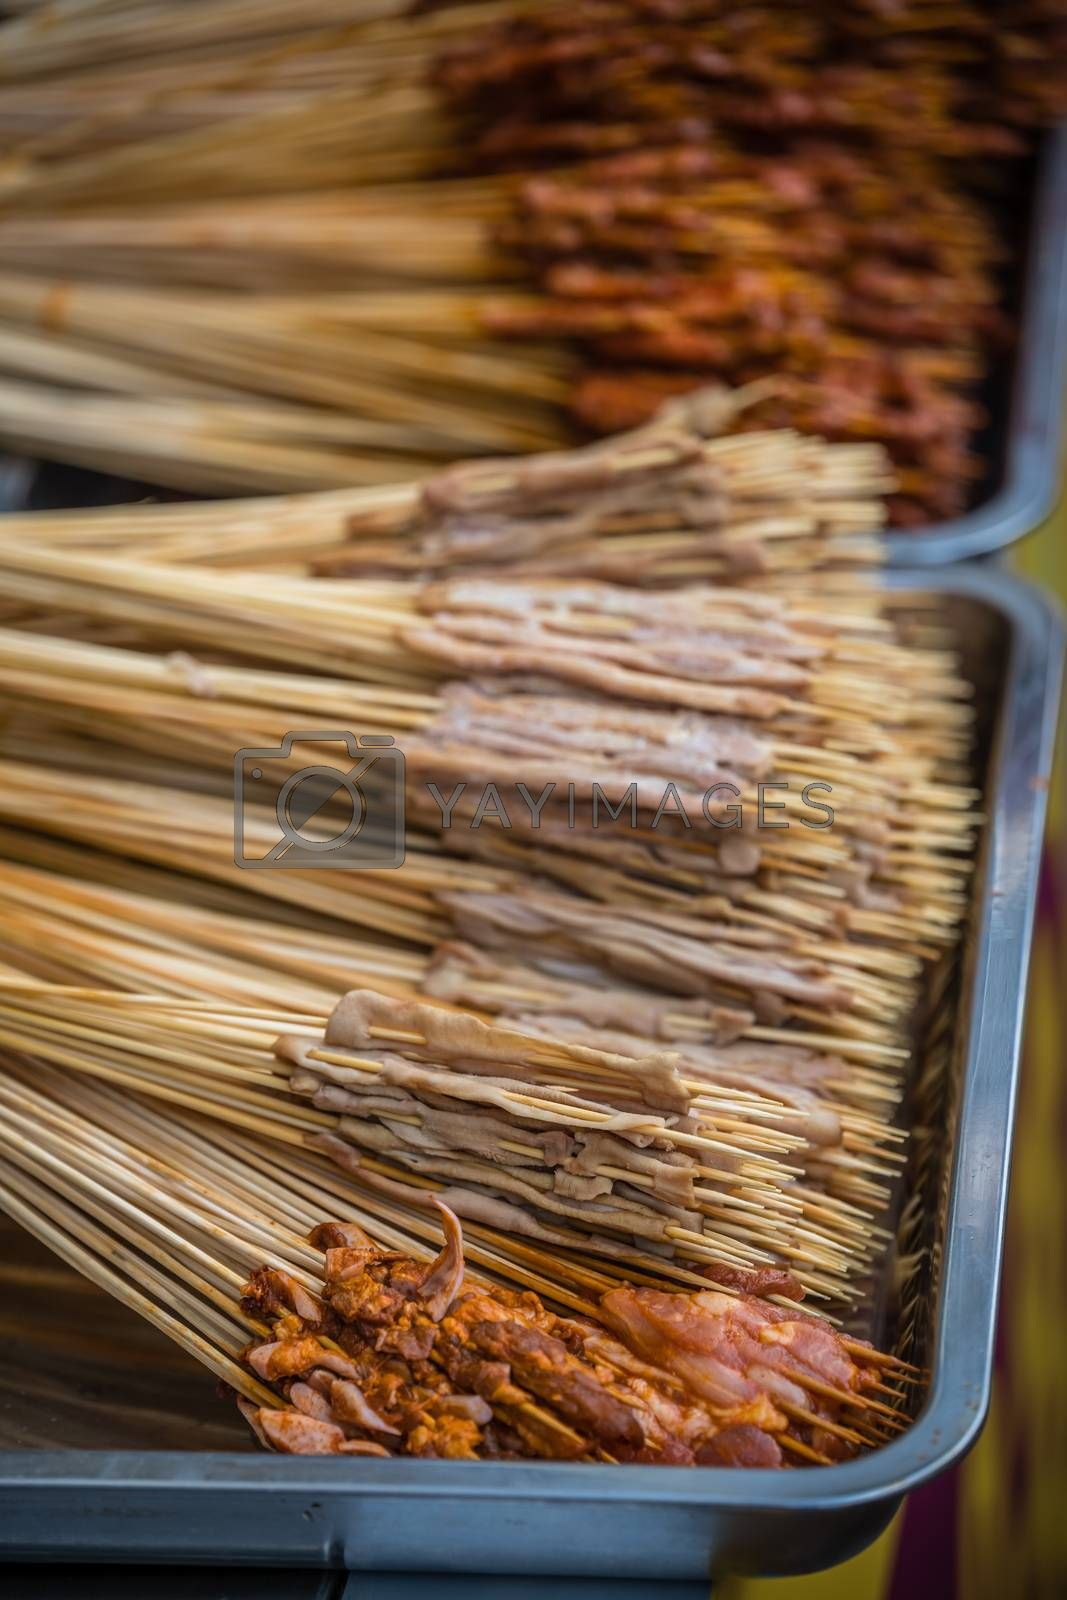 Portions of raw meat, vegetables and seafood on wooden sticks, ready to be grilled on the street in the Muslim Quarter, Xian town, China